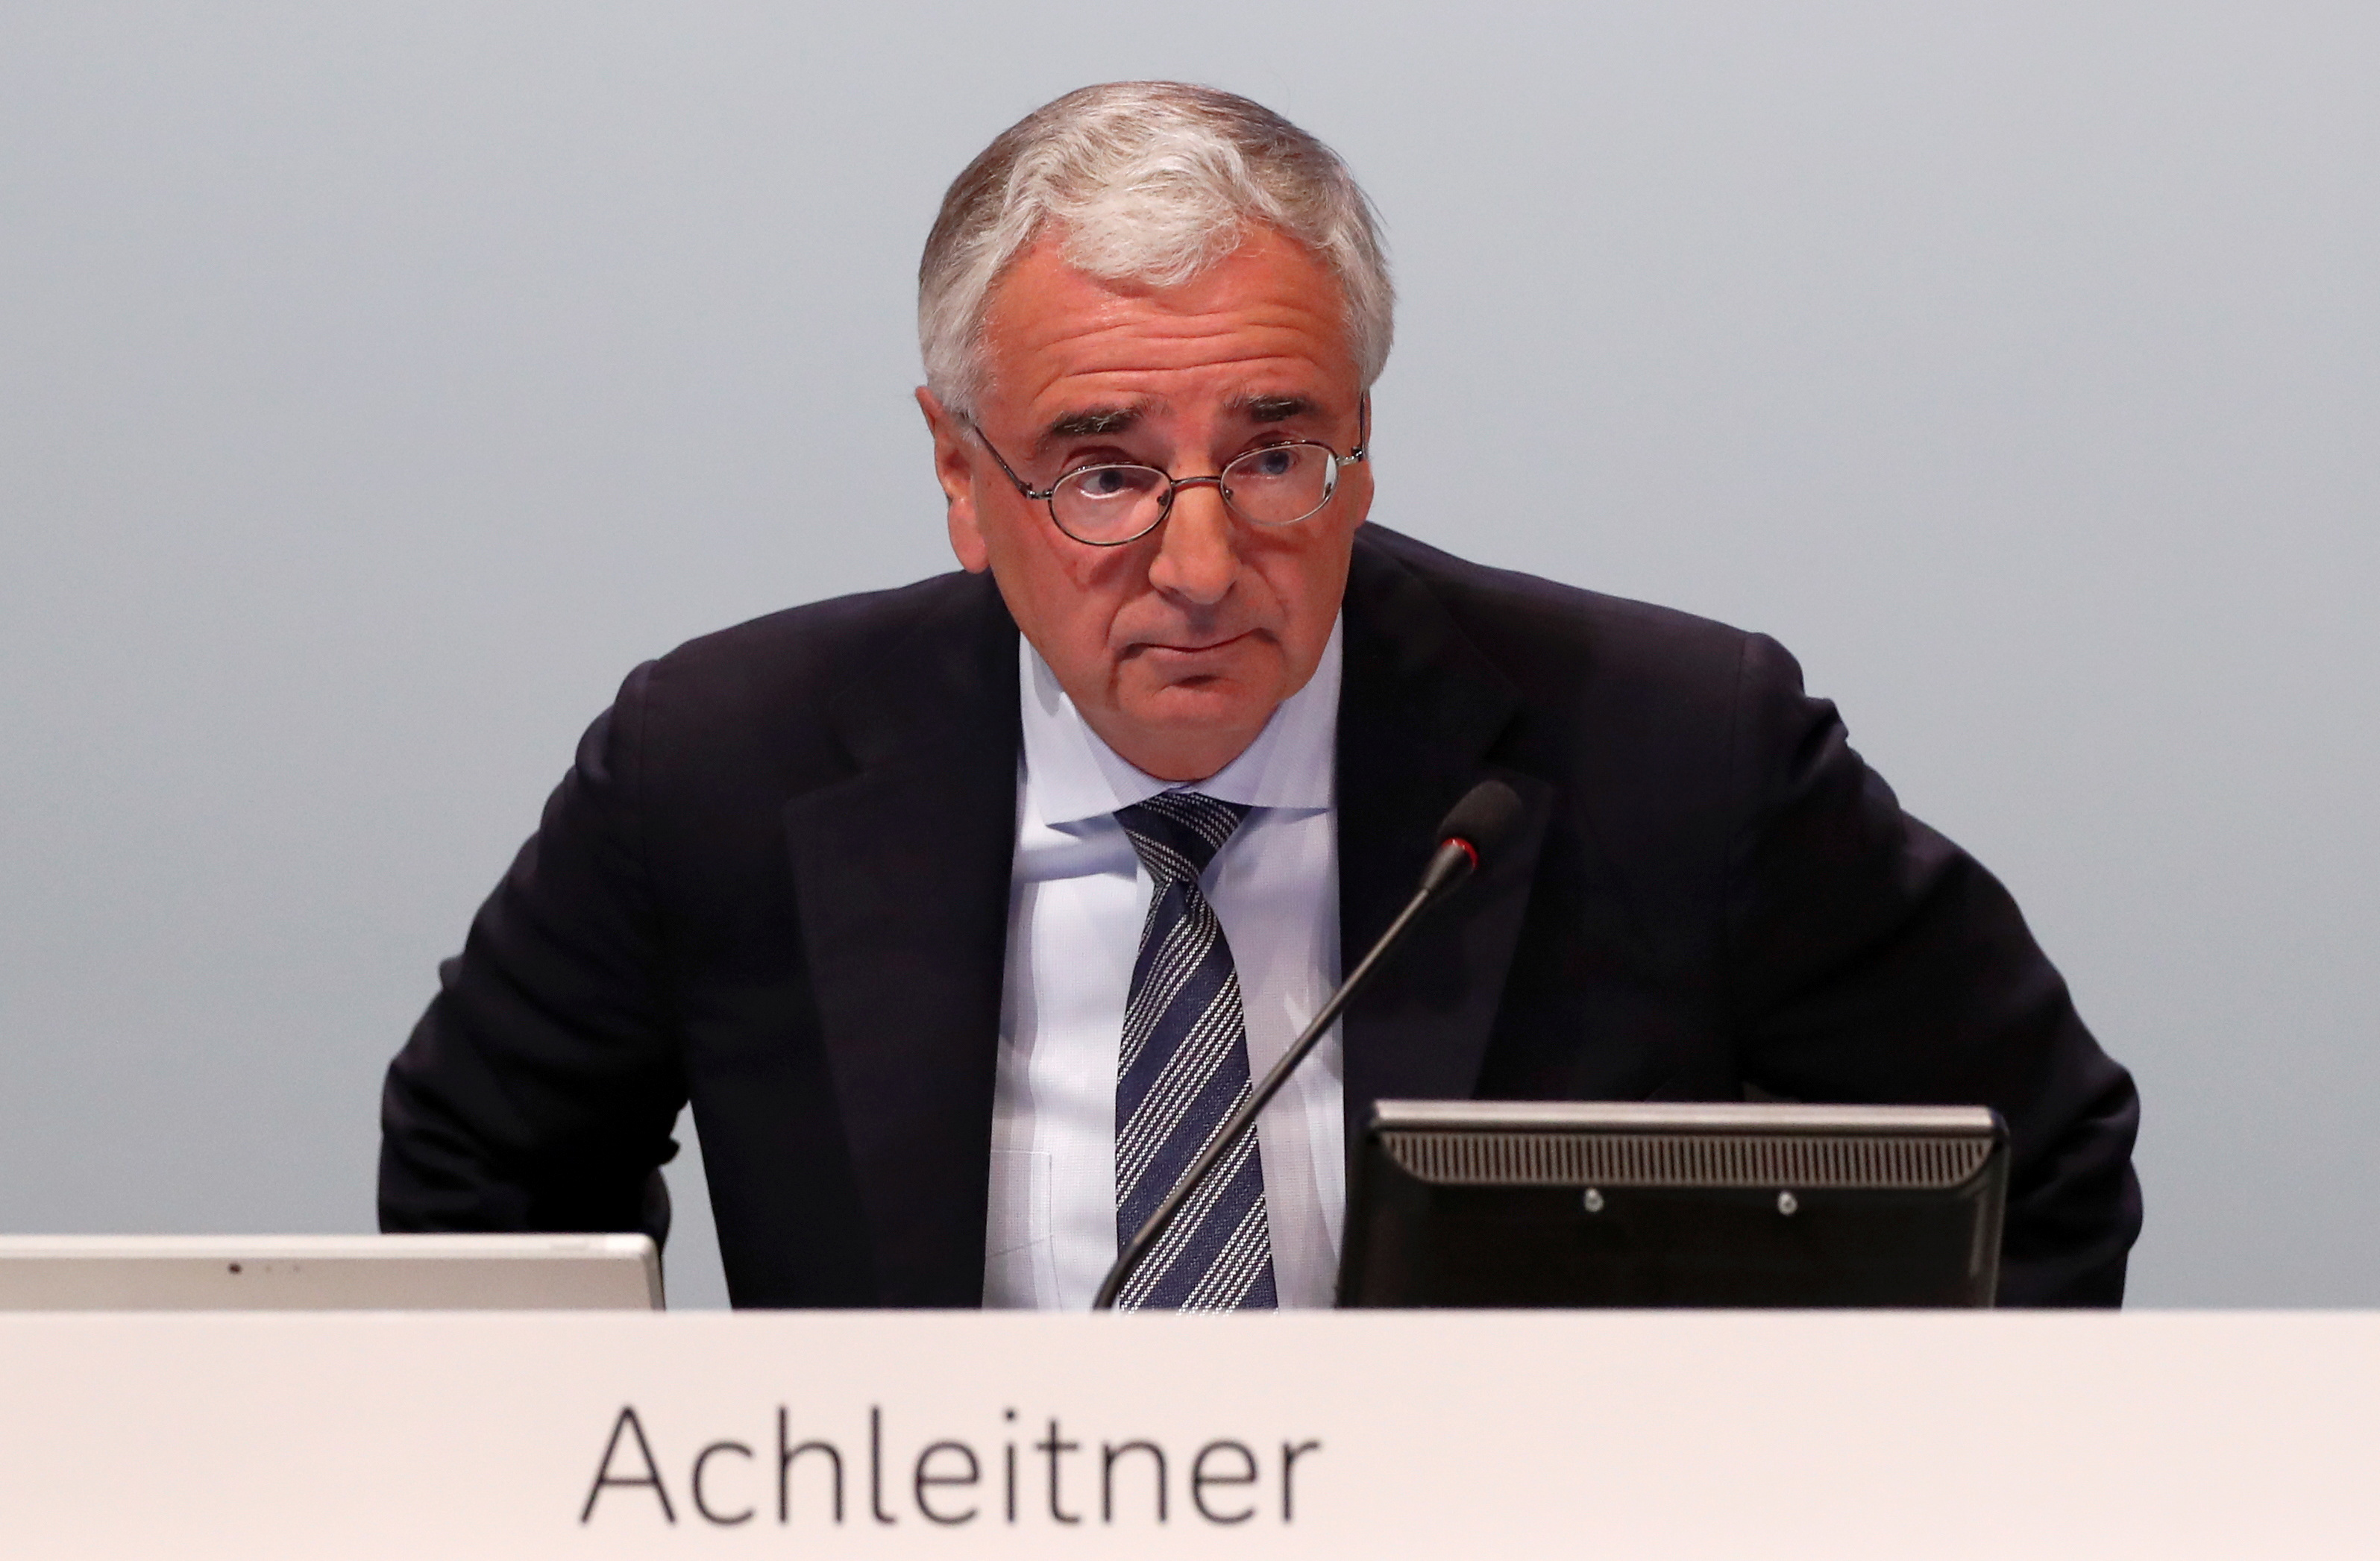 Chairman of the board Paul Achleitner attends the annual shareholder meeting of Germany's largest business bank, Deutsche Bank, in Frankfurt, Germany, May 23, 2019. REUTERS/Kai Pfaffenbach/File Photo